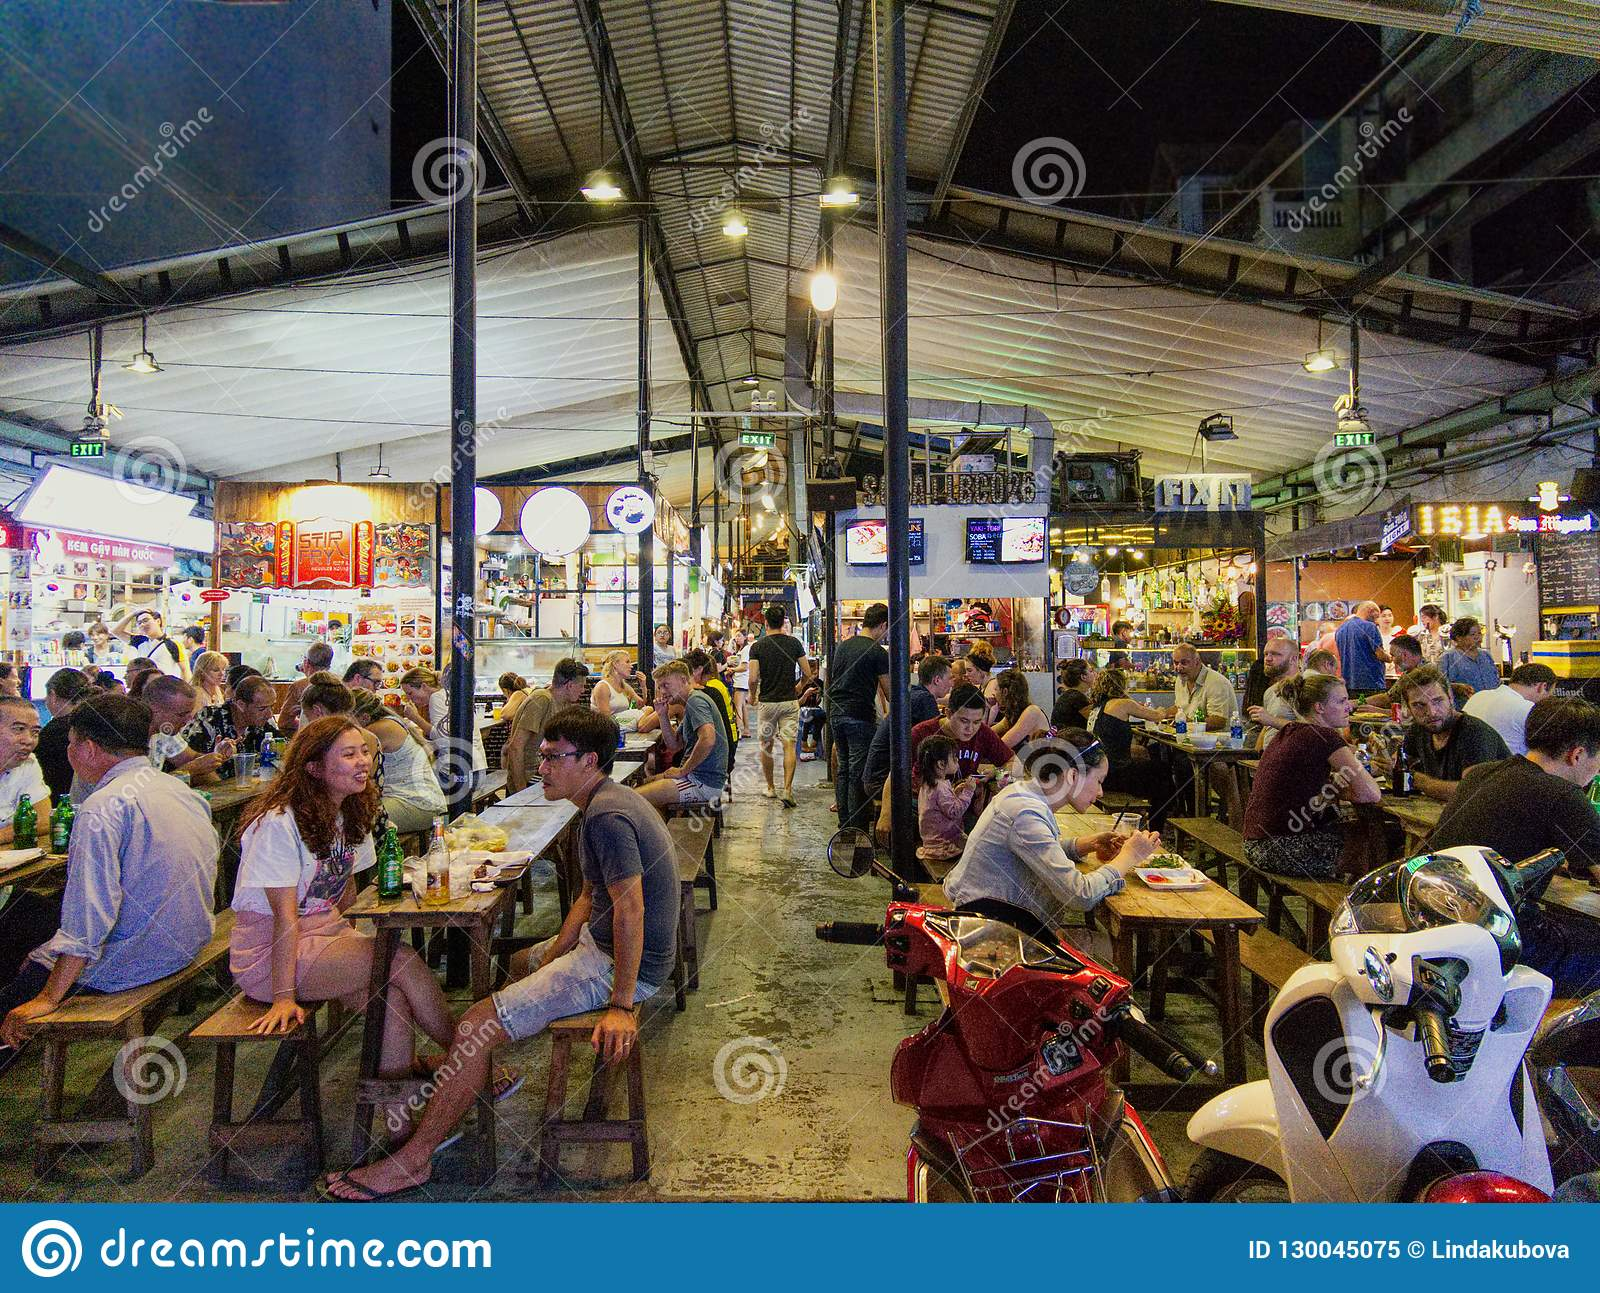 Ben Thanh Food Market In Ho Chi Minh City In Vietnam